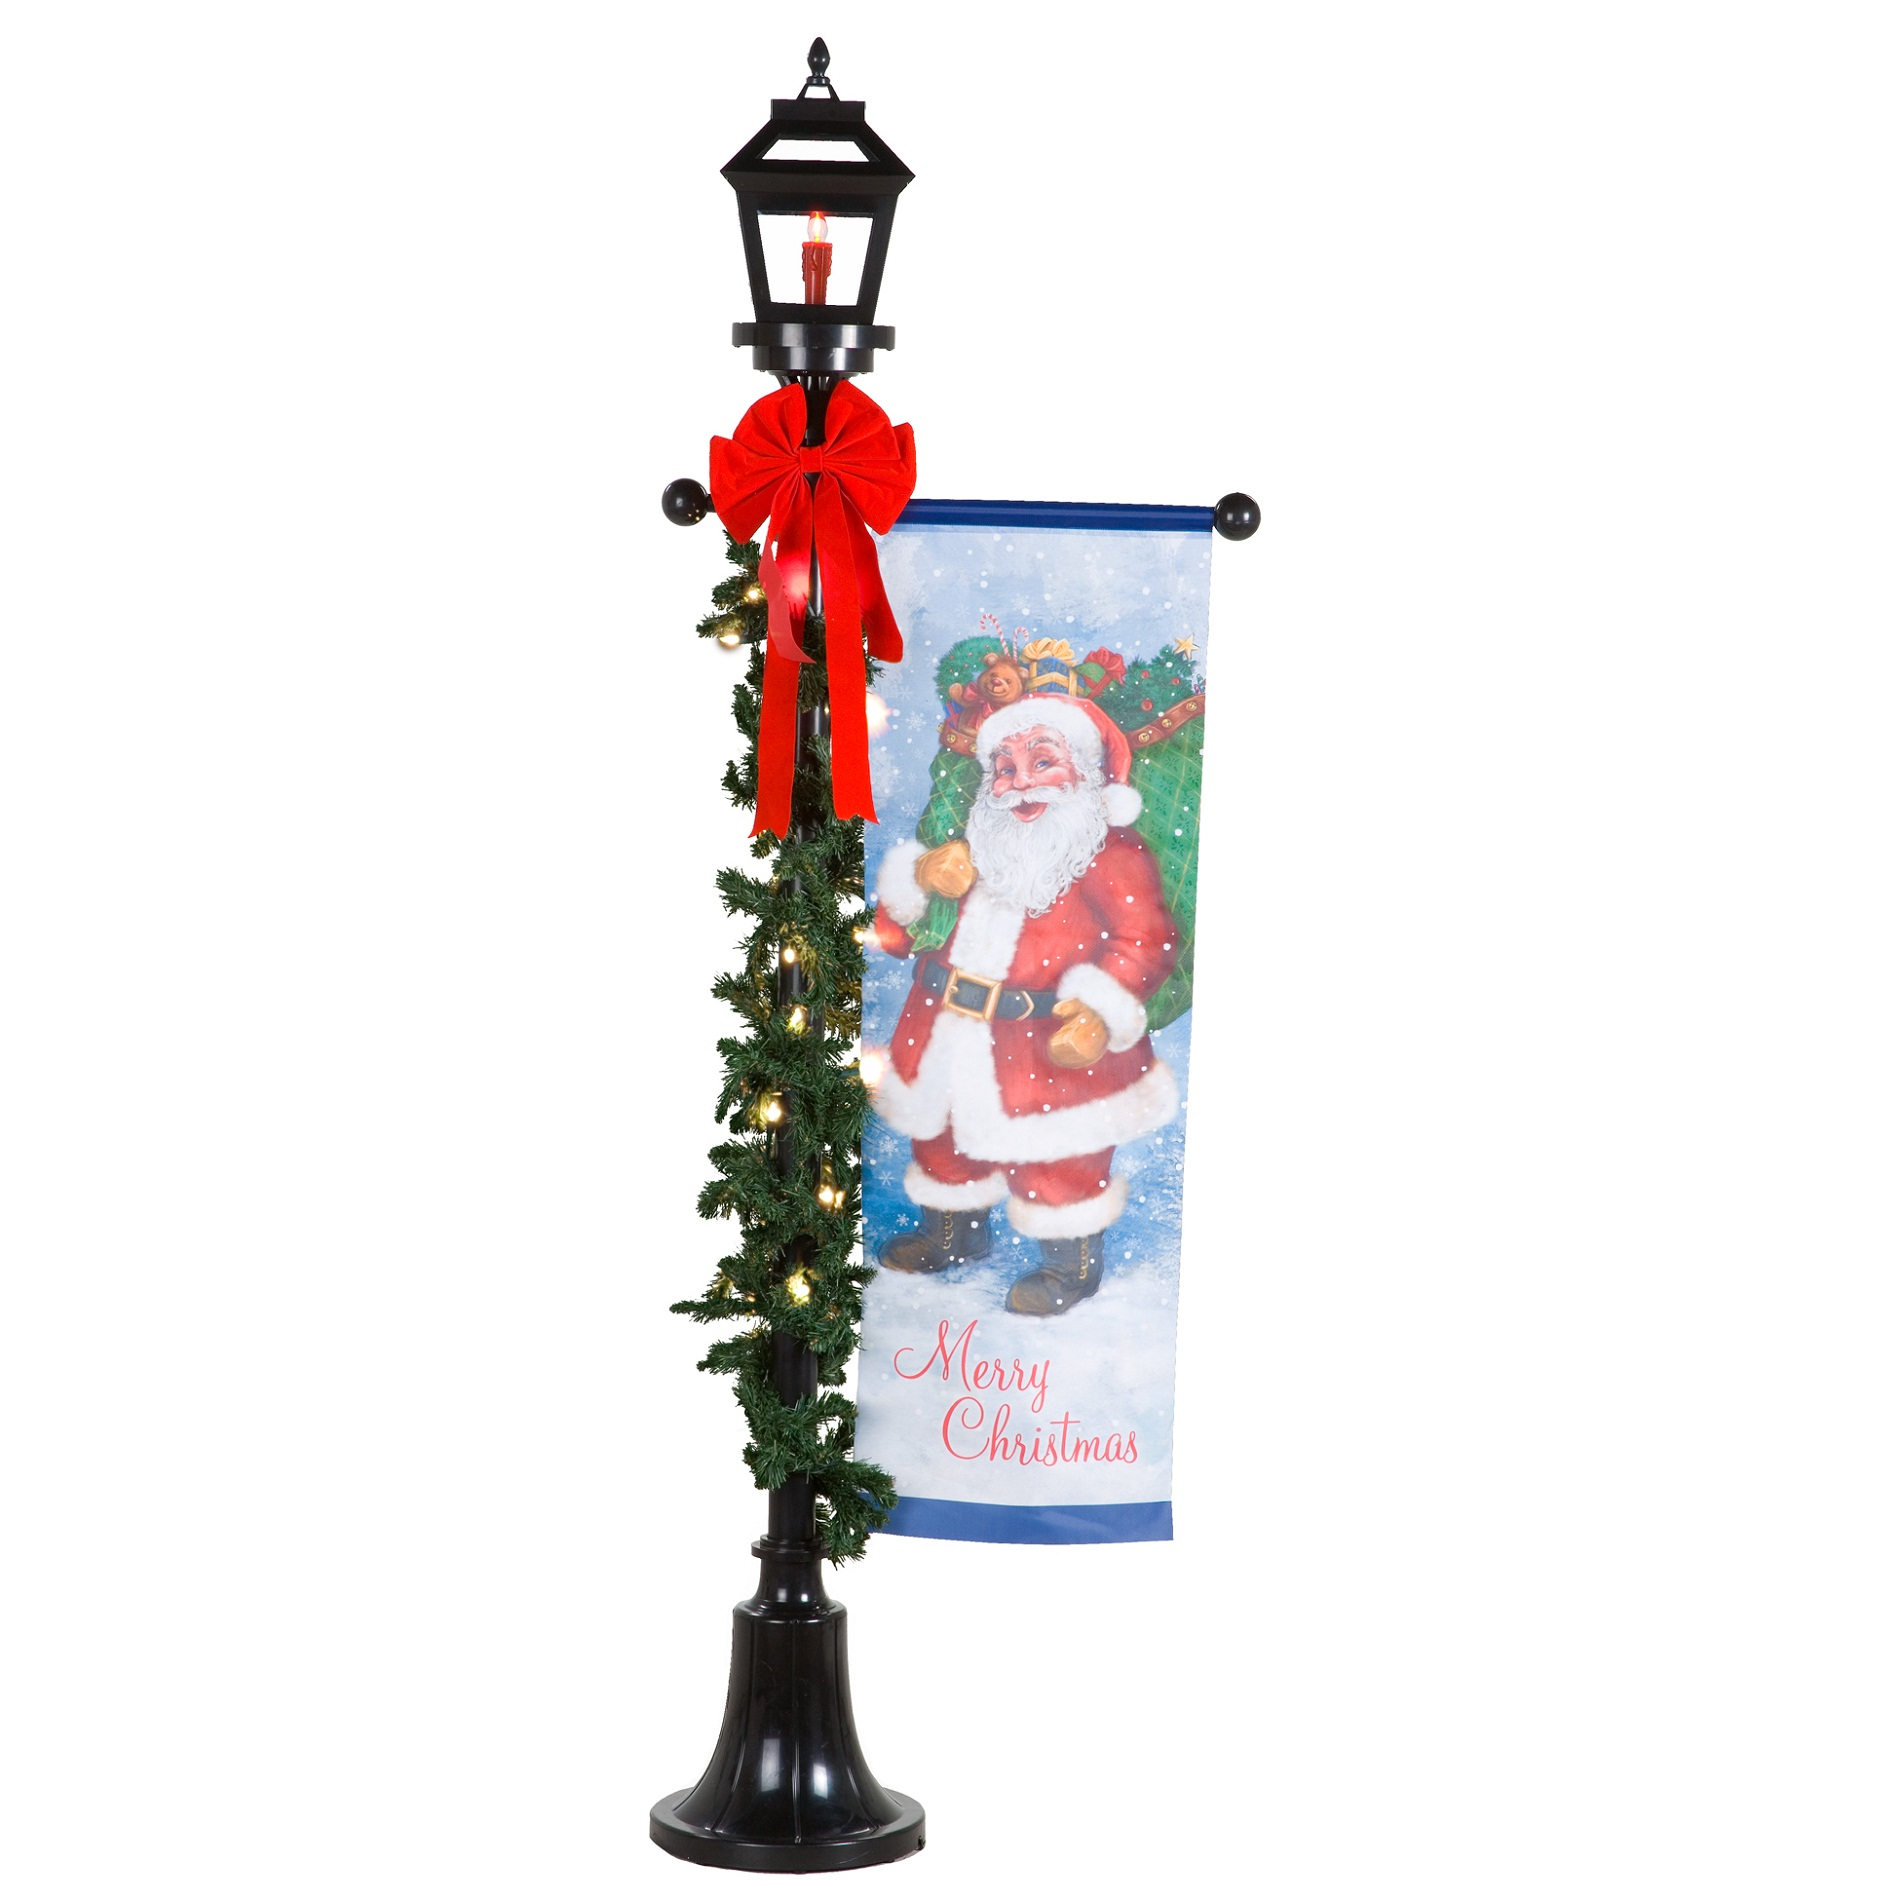 Home Accents 6ft Lamp Post